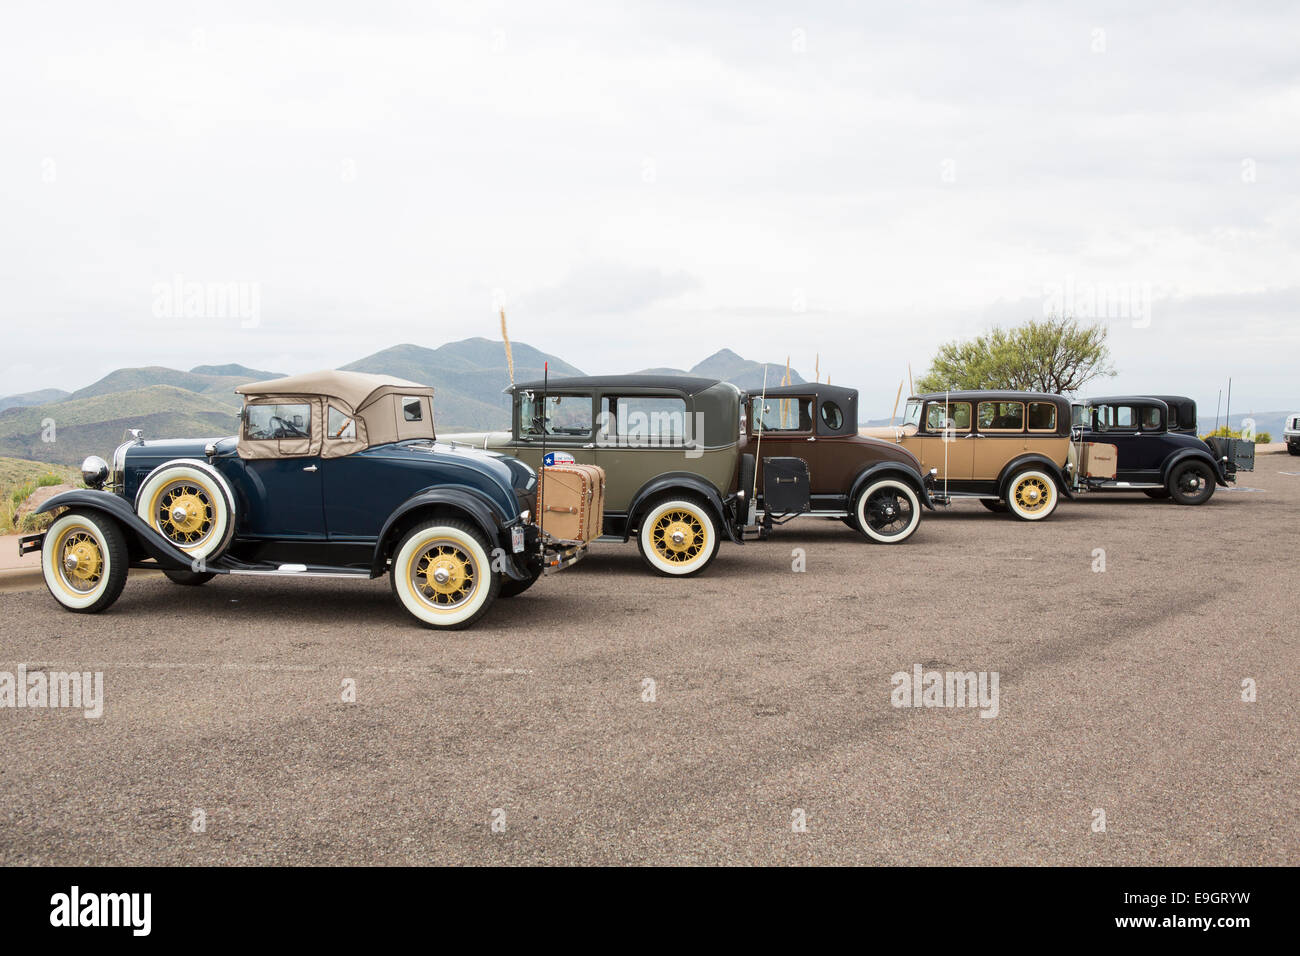 vintage automobiles at sotol vista in big bend  national park, tx - Stock Image